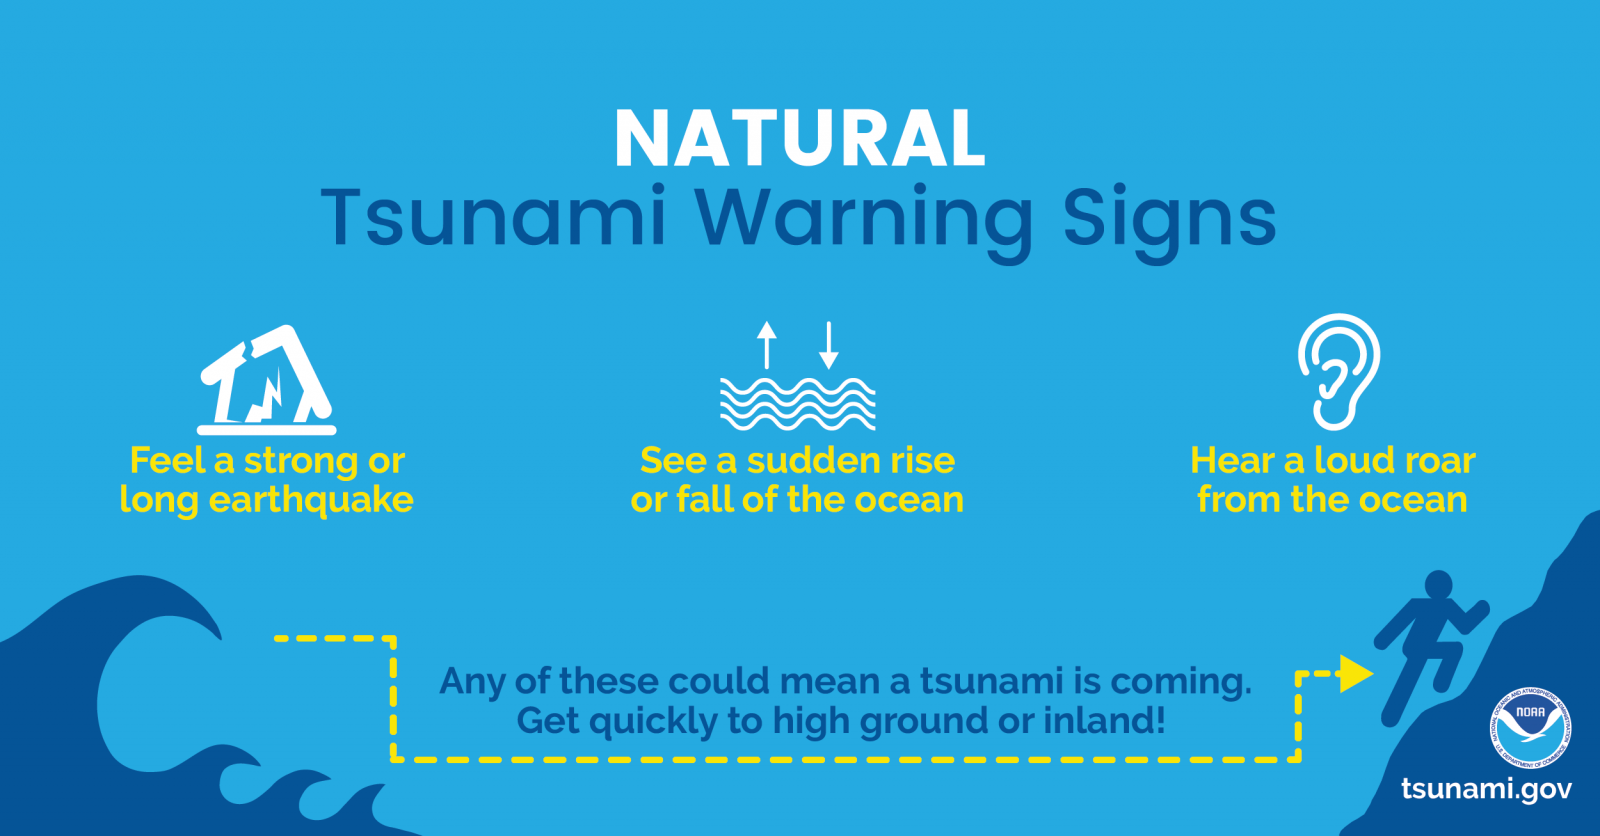 Natural Tsunami Warnings: 1) Feel a strong or long earthquake. 2) See a sudden rise or fall of the ocean. 3) Hear a loud roar from the ocean. Any of these could mean a tsunami is coming. Get quickly to high ground or inland.